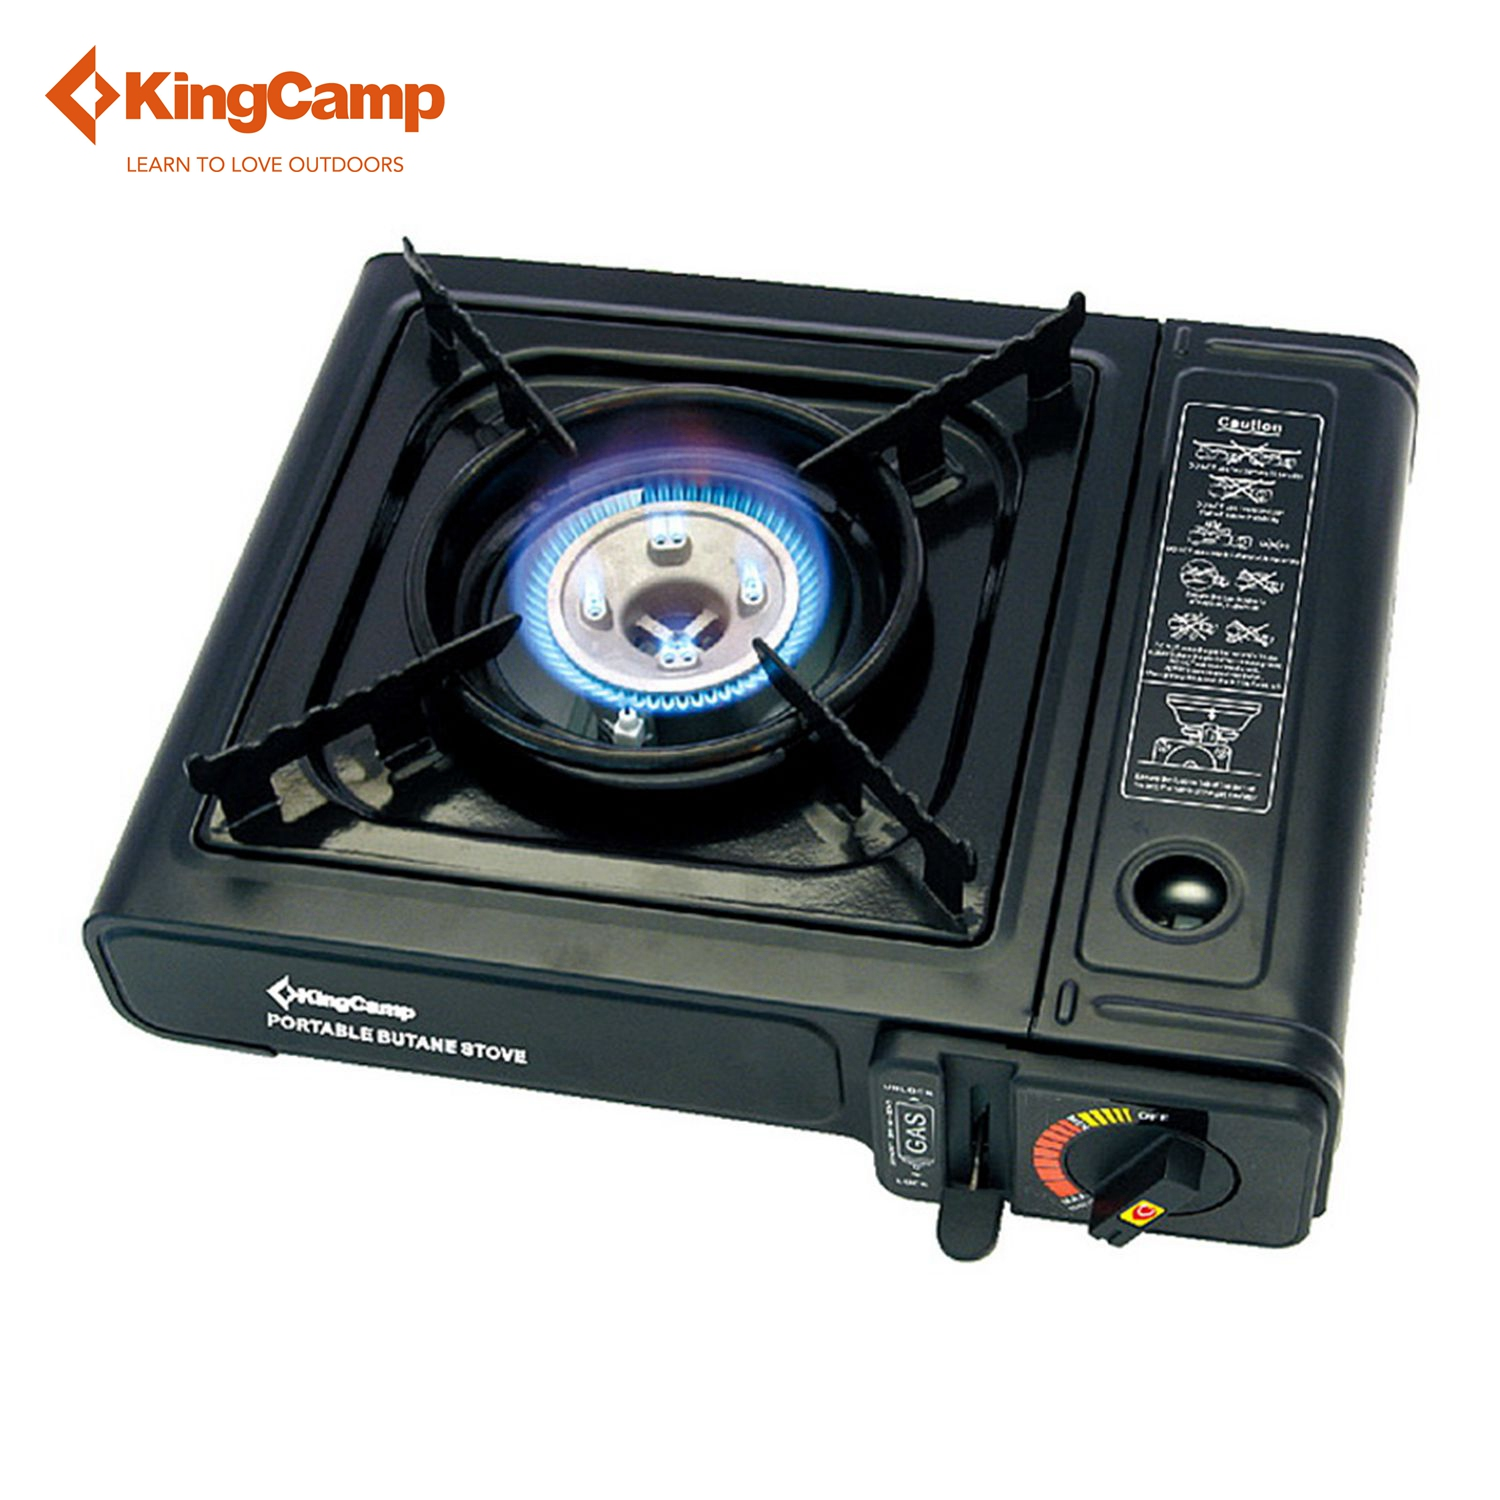 kingcamp 2016 outdoor portable gas stove camping hiking. Black Bedroom Furniture Sets. Home Design Ideas